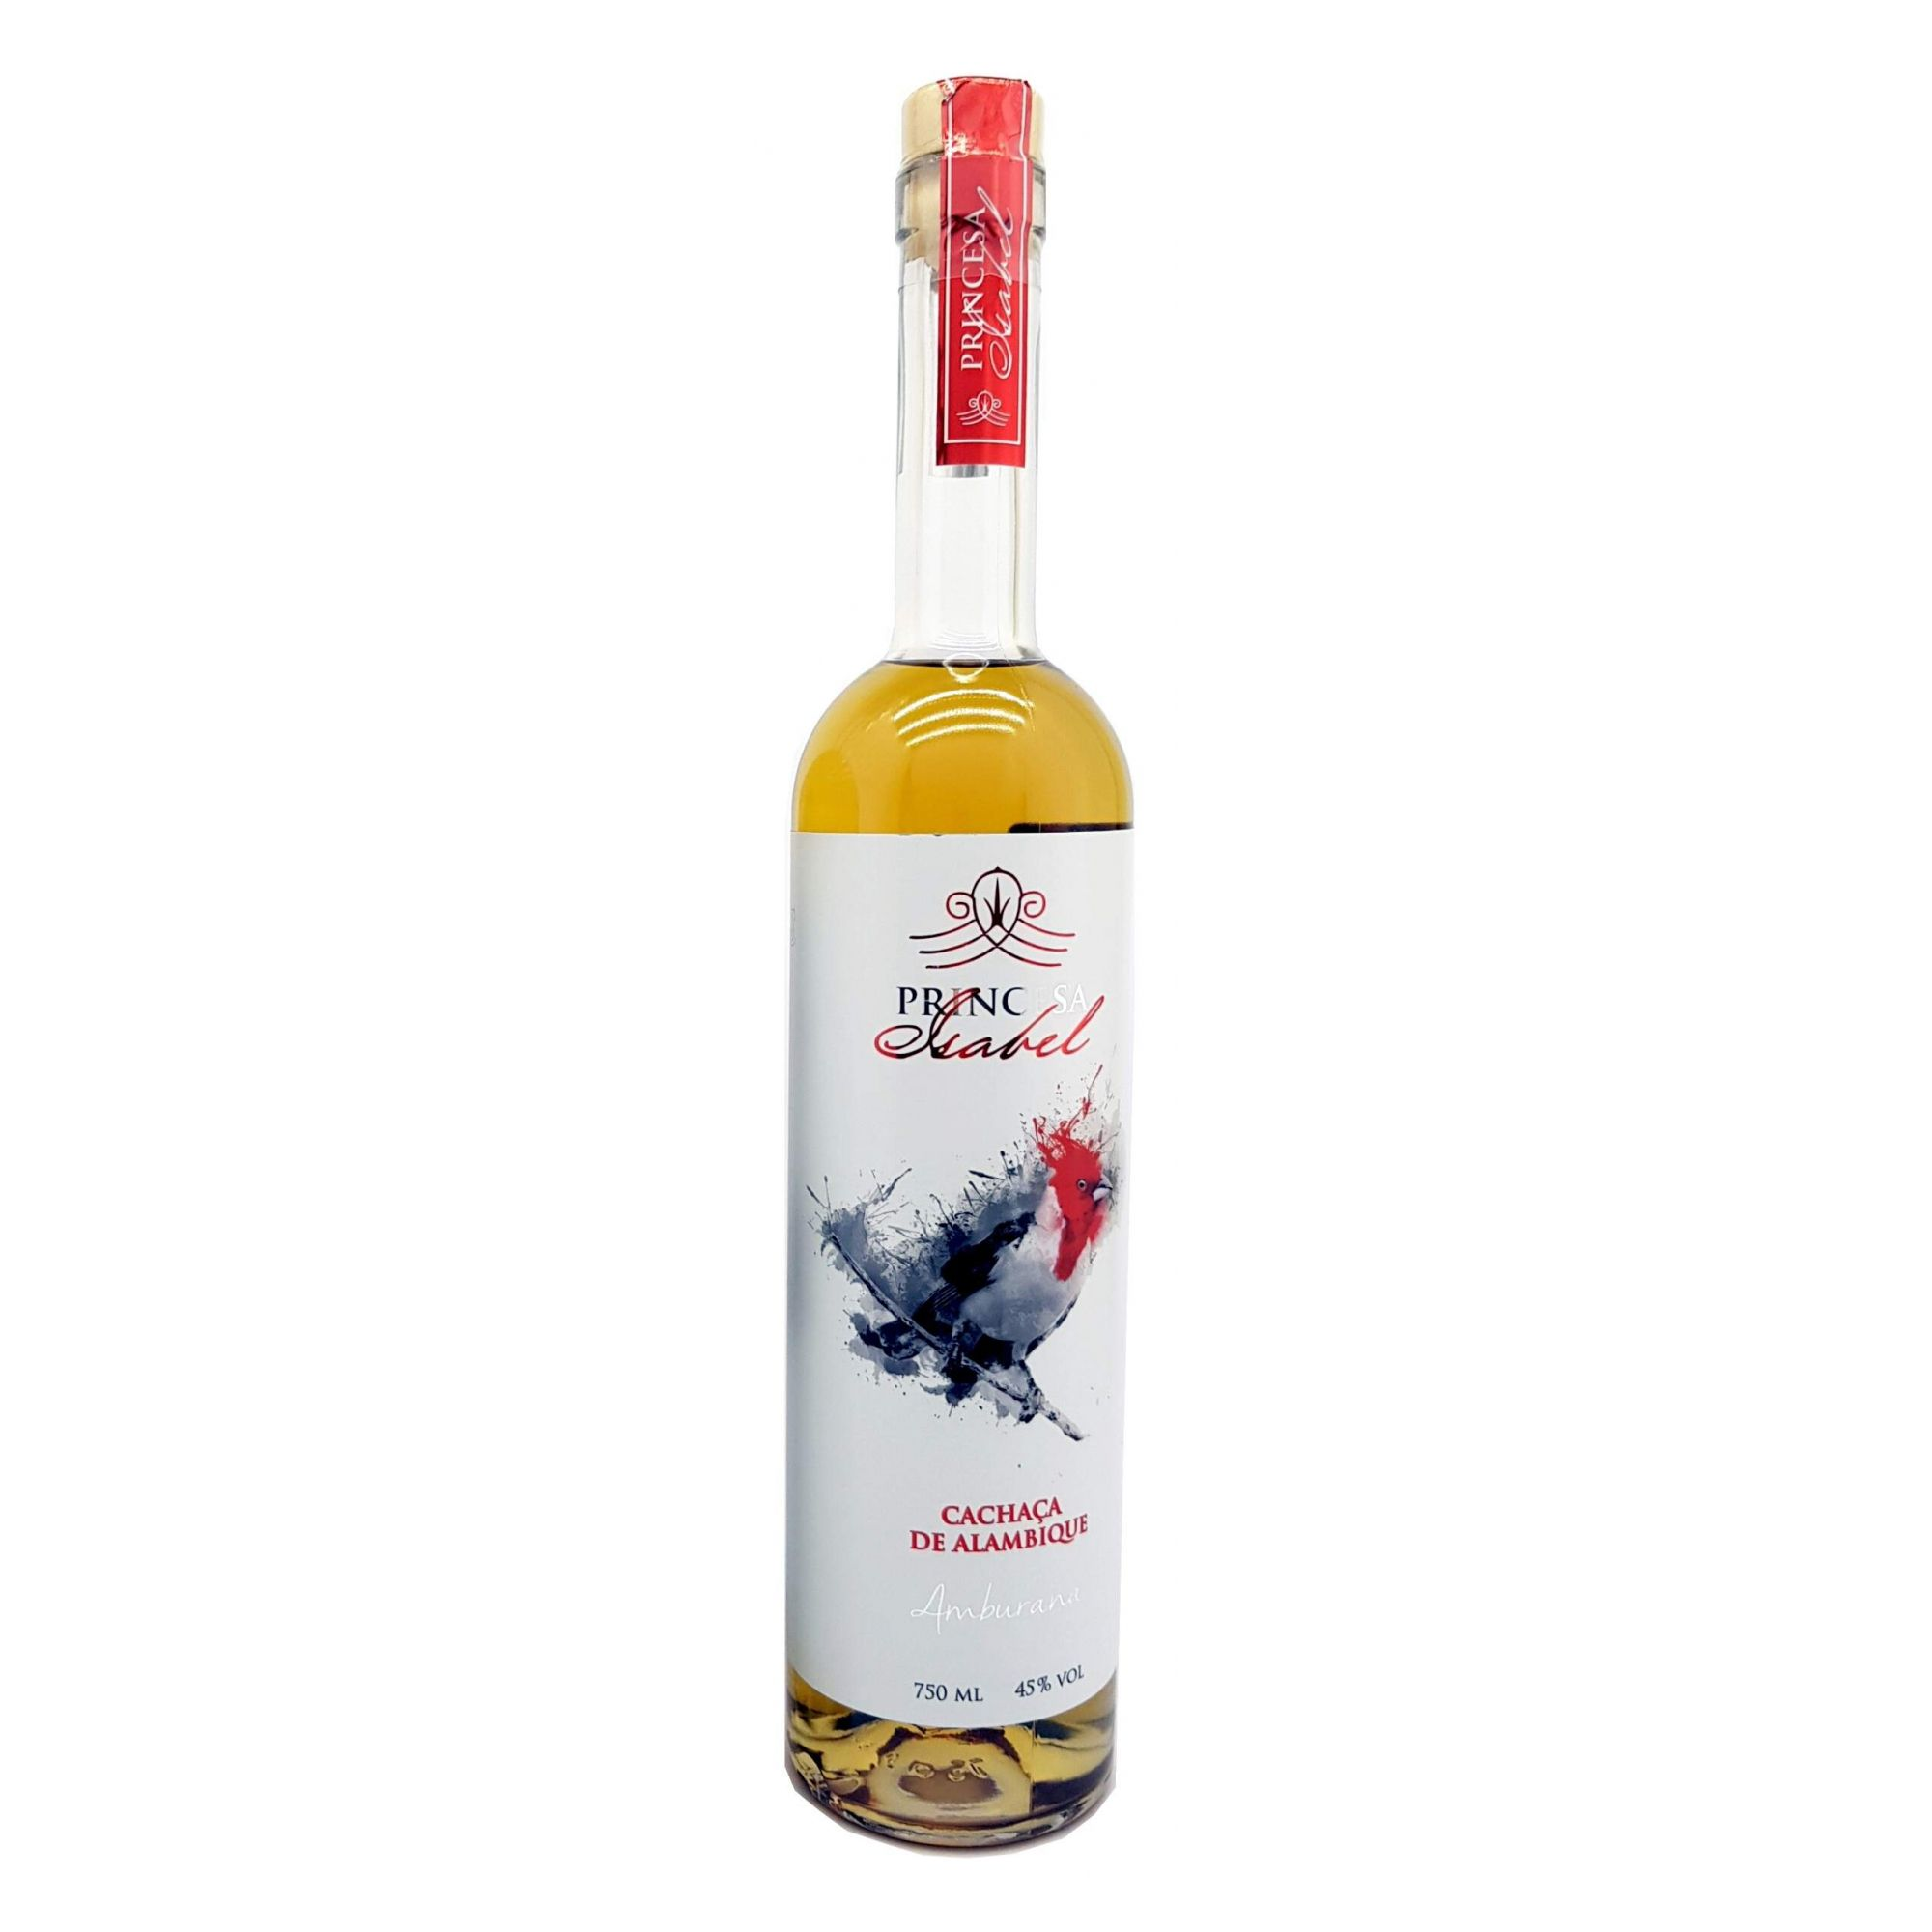 Cachaça Princesa Isabel Amburana 750ml